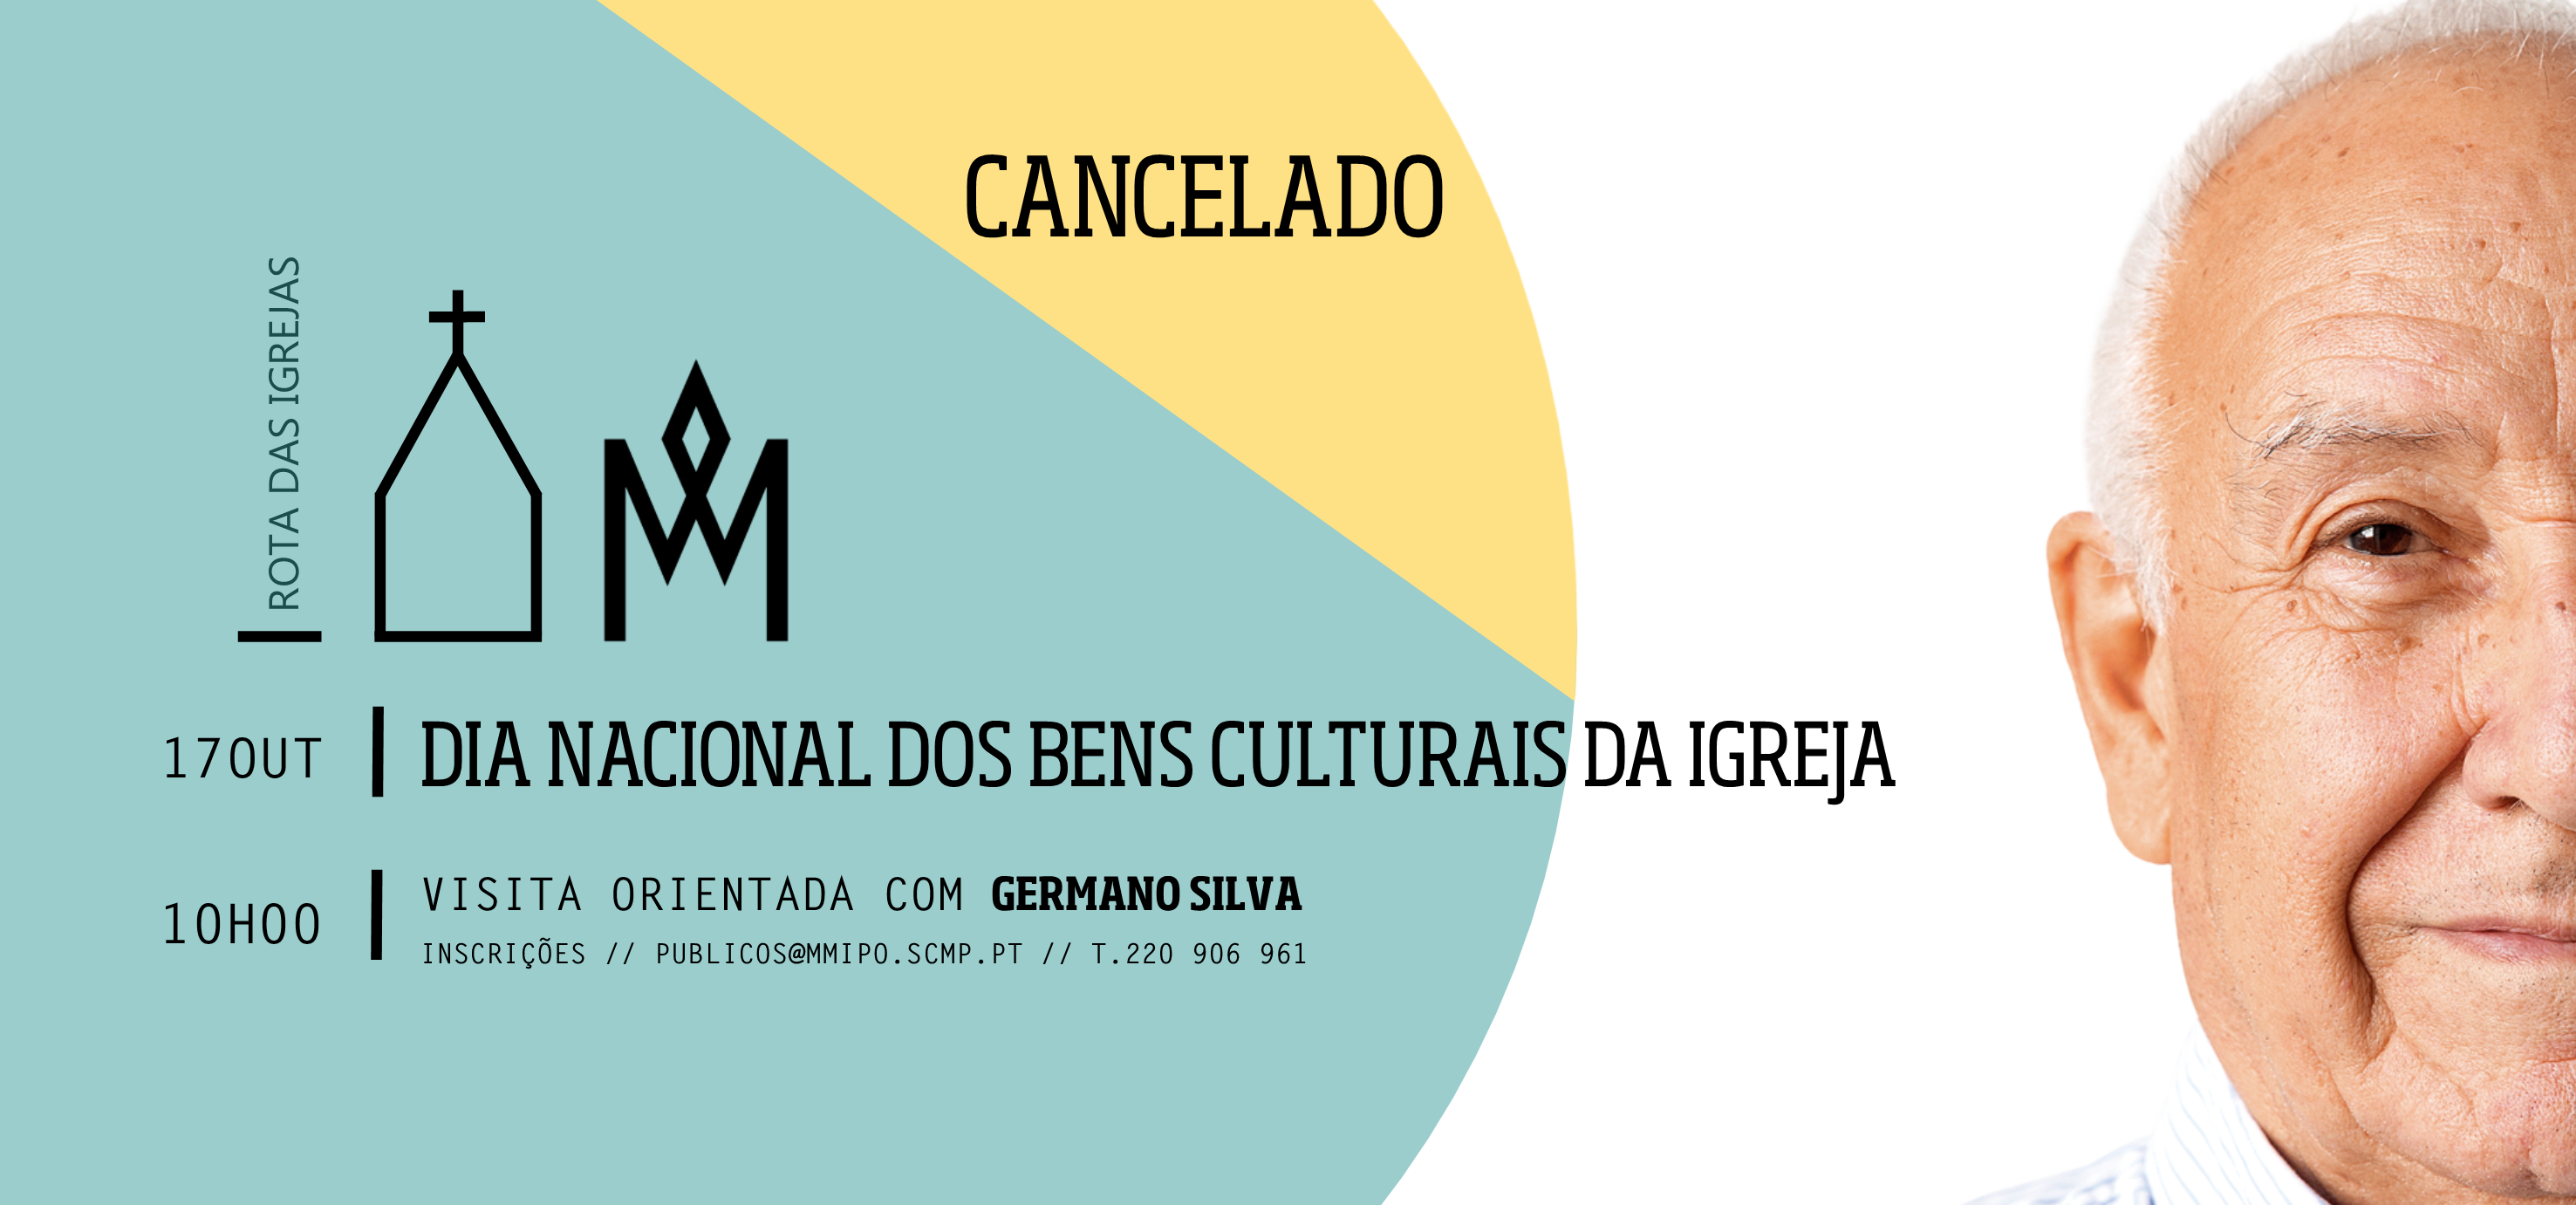 https://www.scmp.pt/assets/misc/img/noticias/2020/2020-10-16%20MMIPO/banner%20cancelado.png